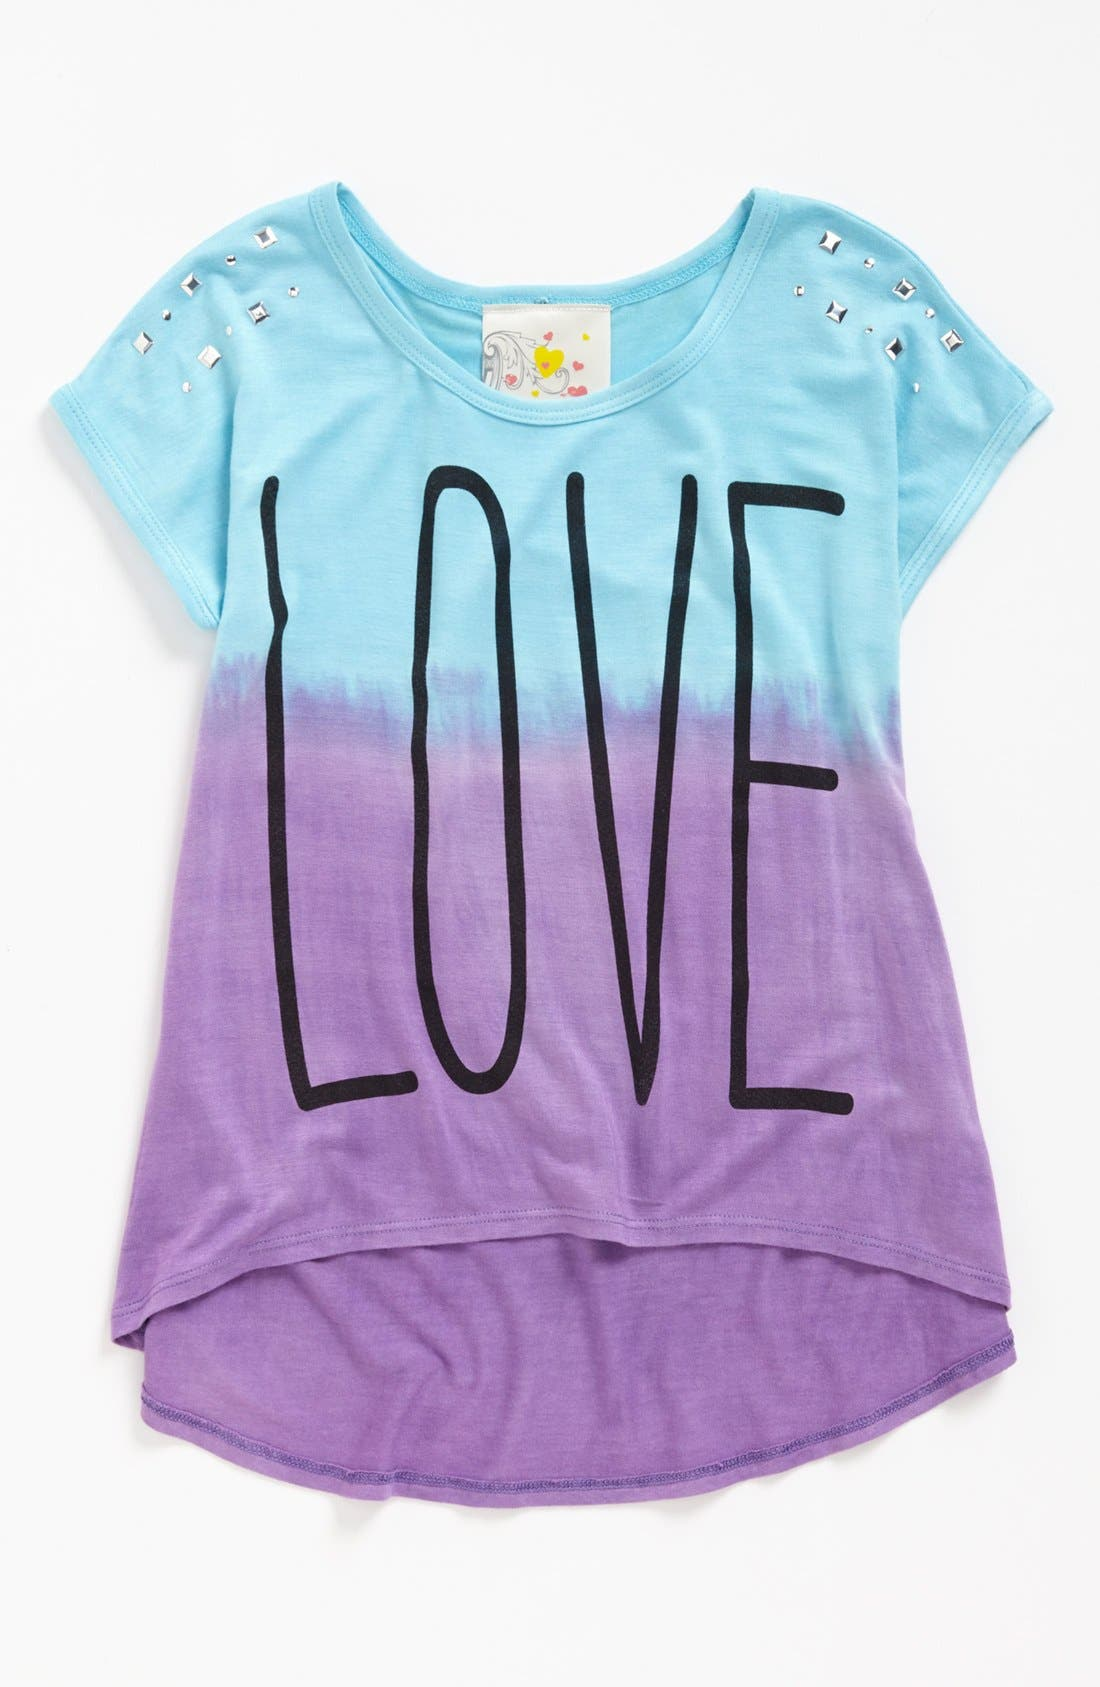 Main Image - Jenna & Jessie 'Love' Top (Little Girls)